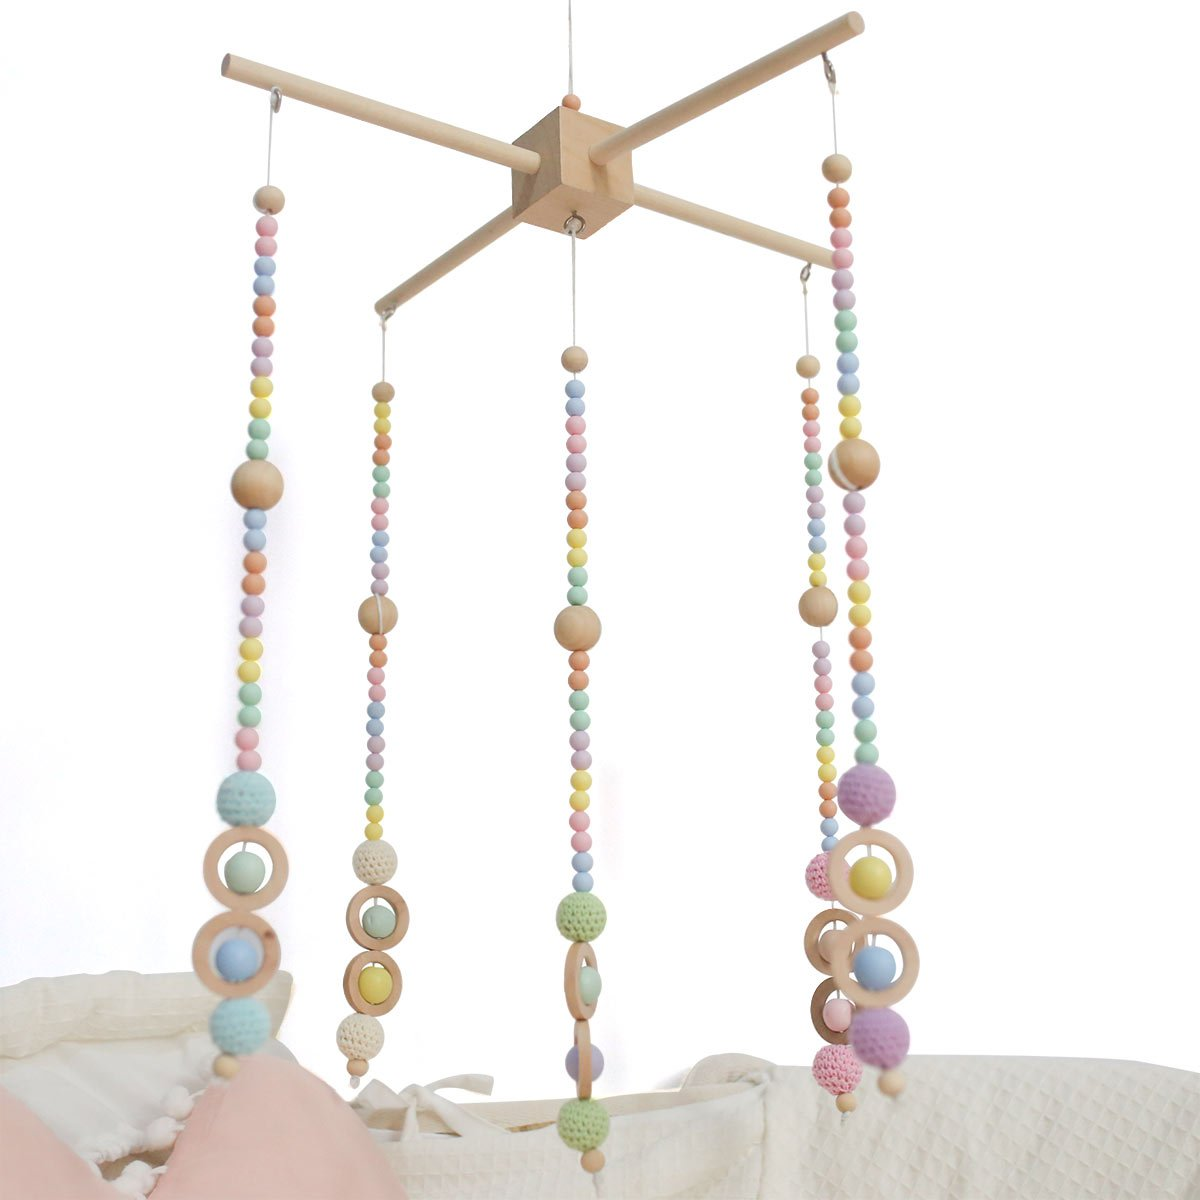 Baby Crib Mobile Bed Bell Silicone Beads Baby Rattles Toys Handmade Nursery Infant Mobile Wooden Wind Chimes Tent Hanging Baby Room Decor Ceiling Decor Playroom HAO JIE